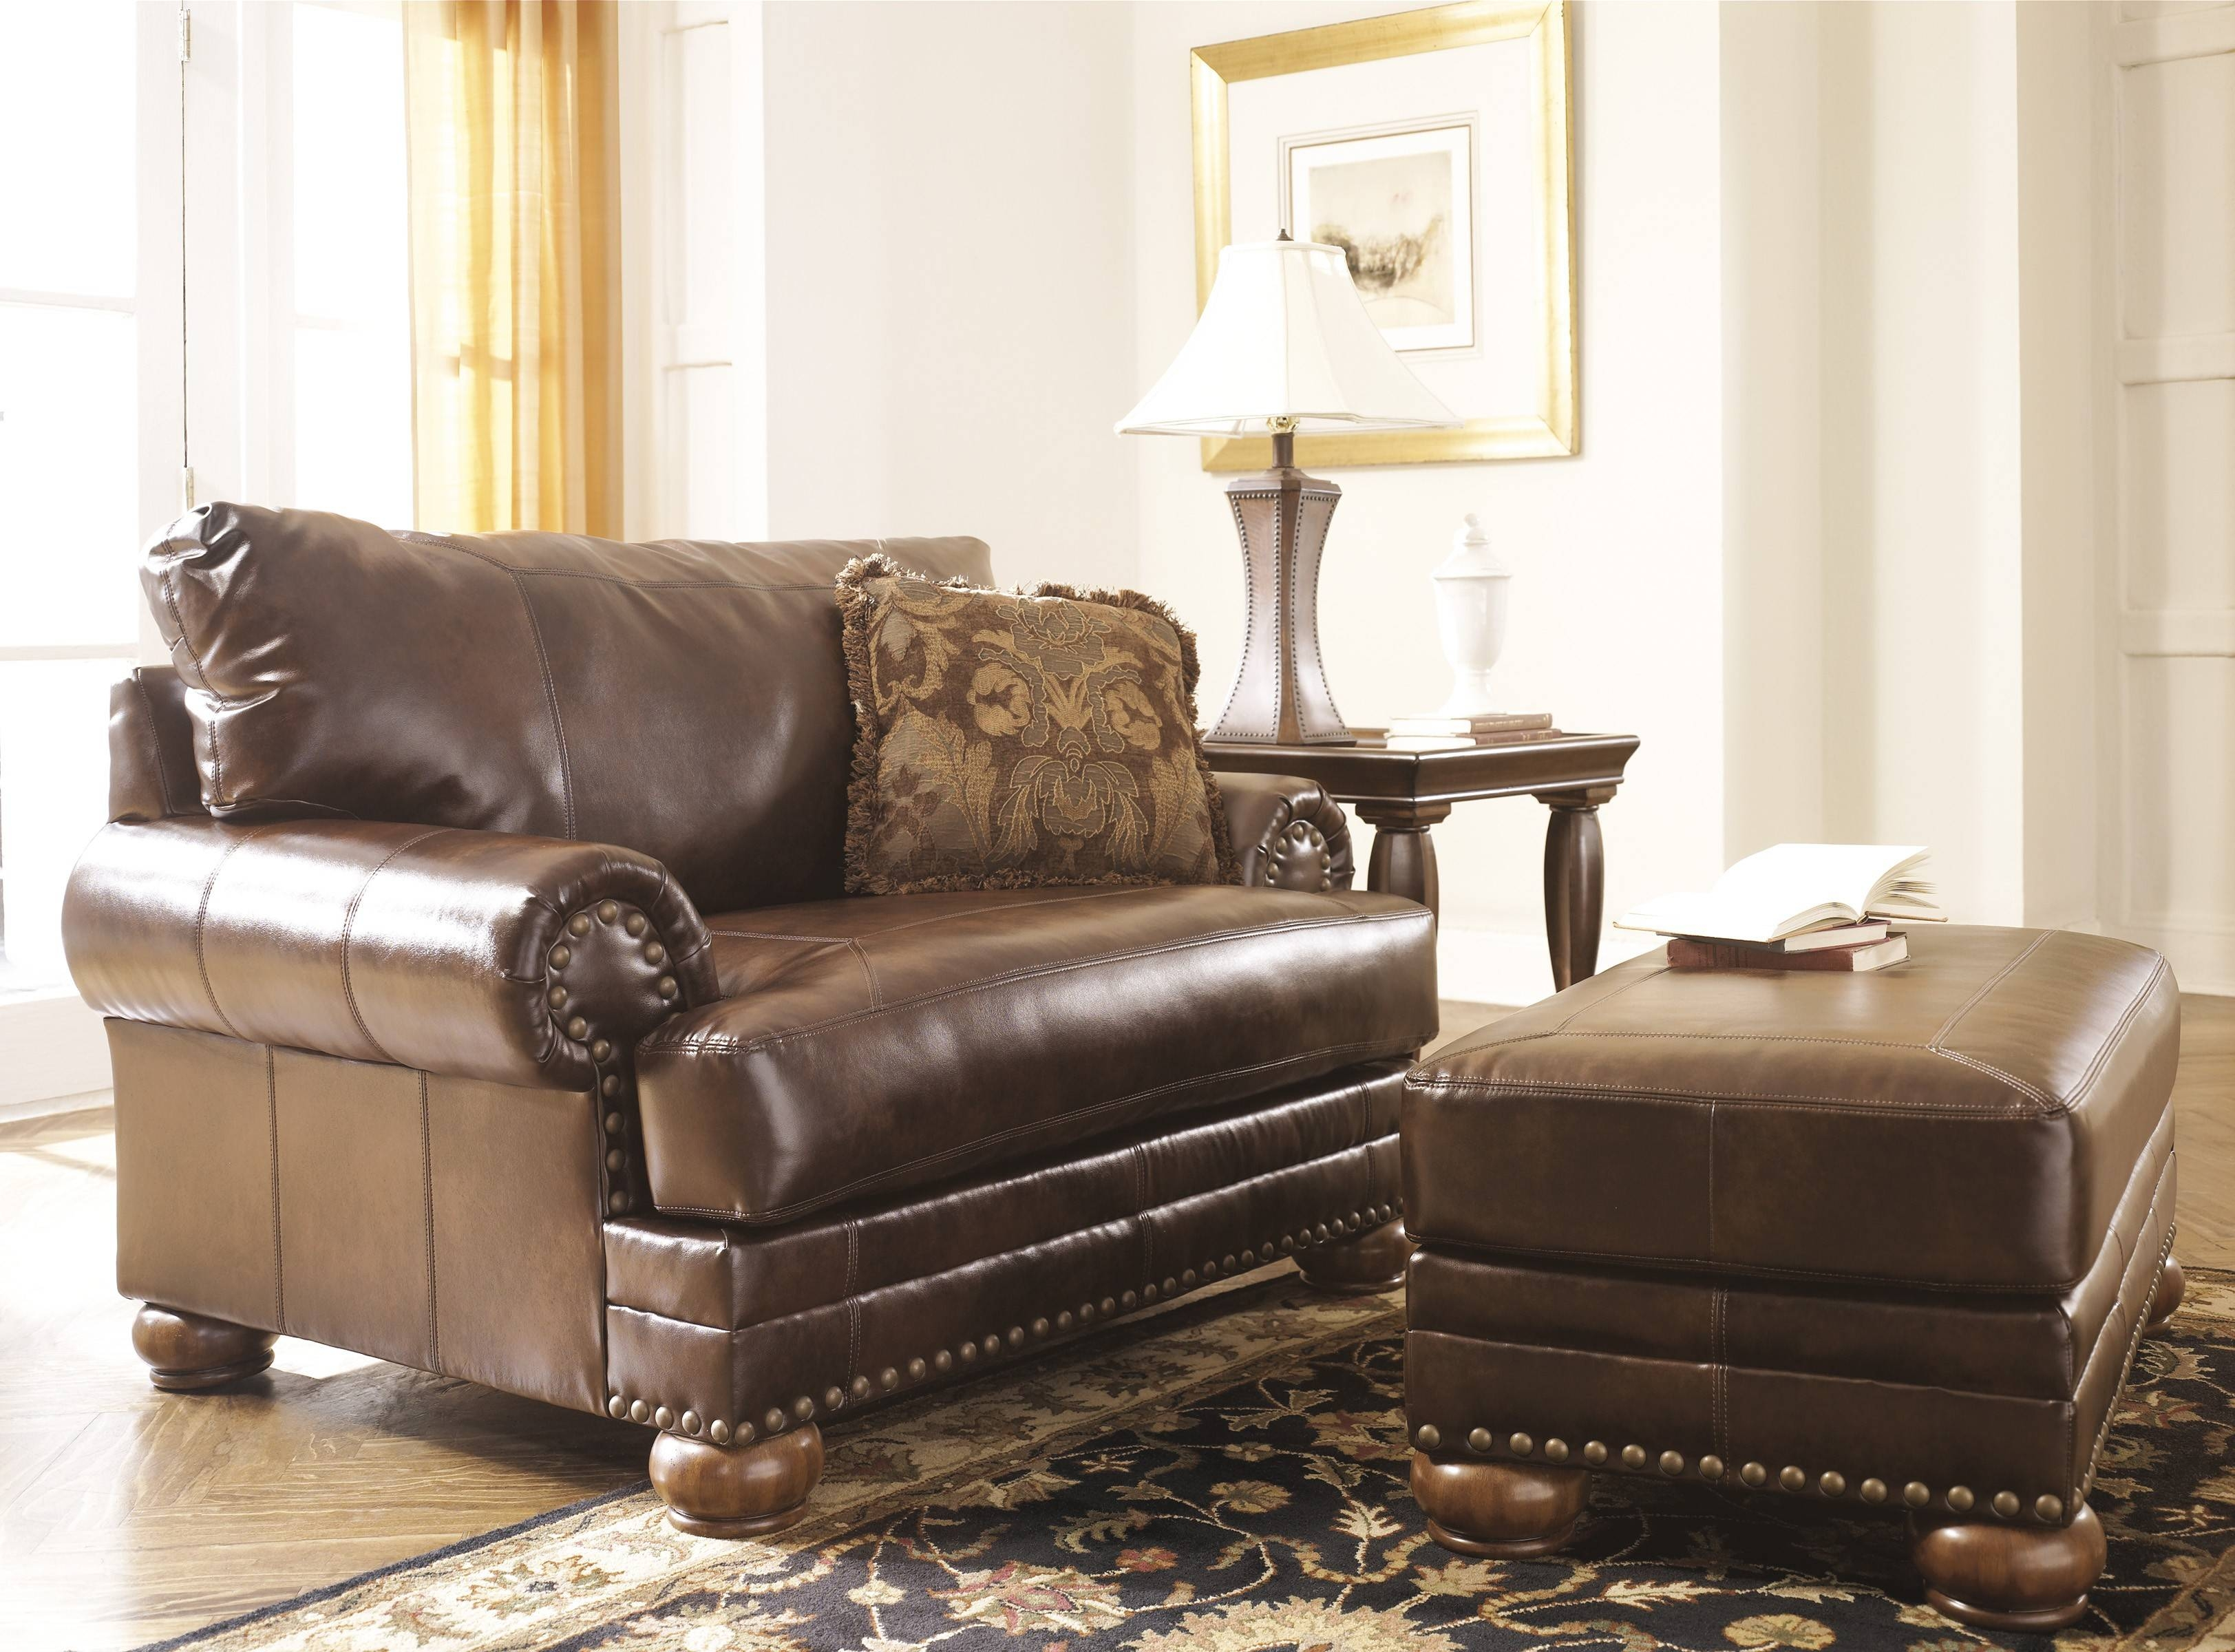 Ashley Brown Leather Durablend Antique Sofaashley Furniture with regard to Antique Sofa Chairs (Image 7 of 30)